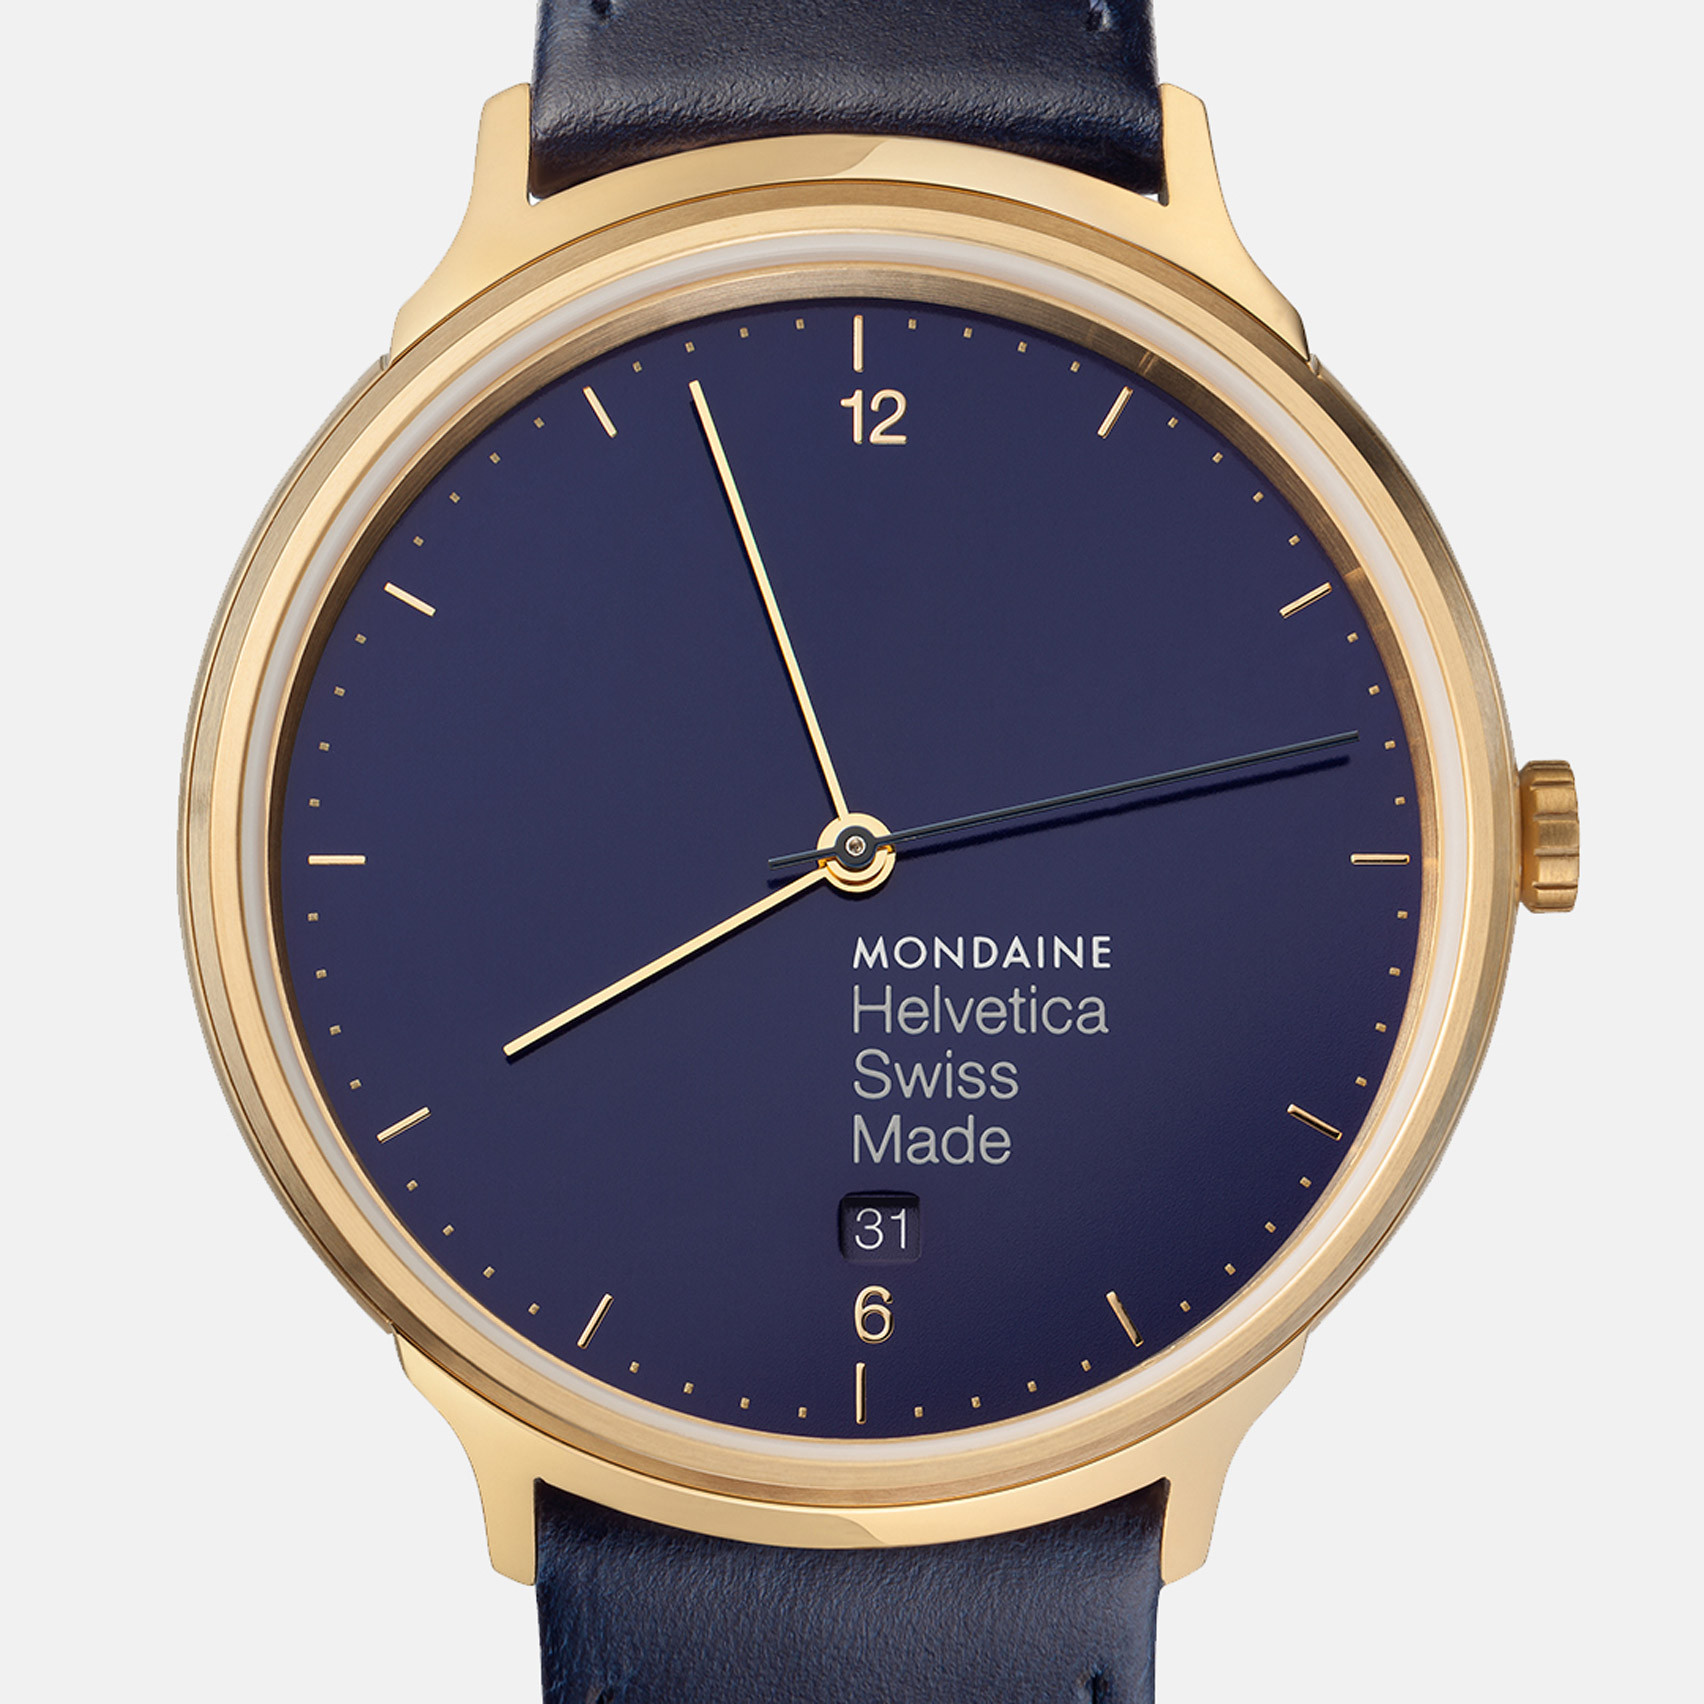 New styles added to Dezeen Watch Store's end-of-season sale